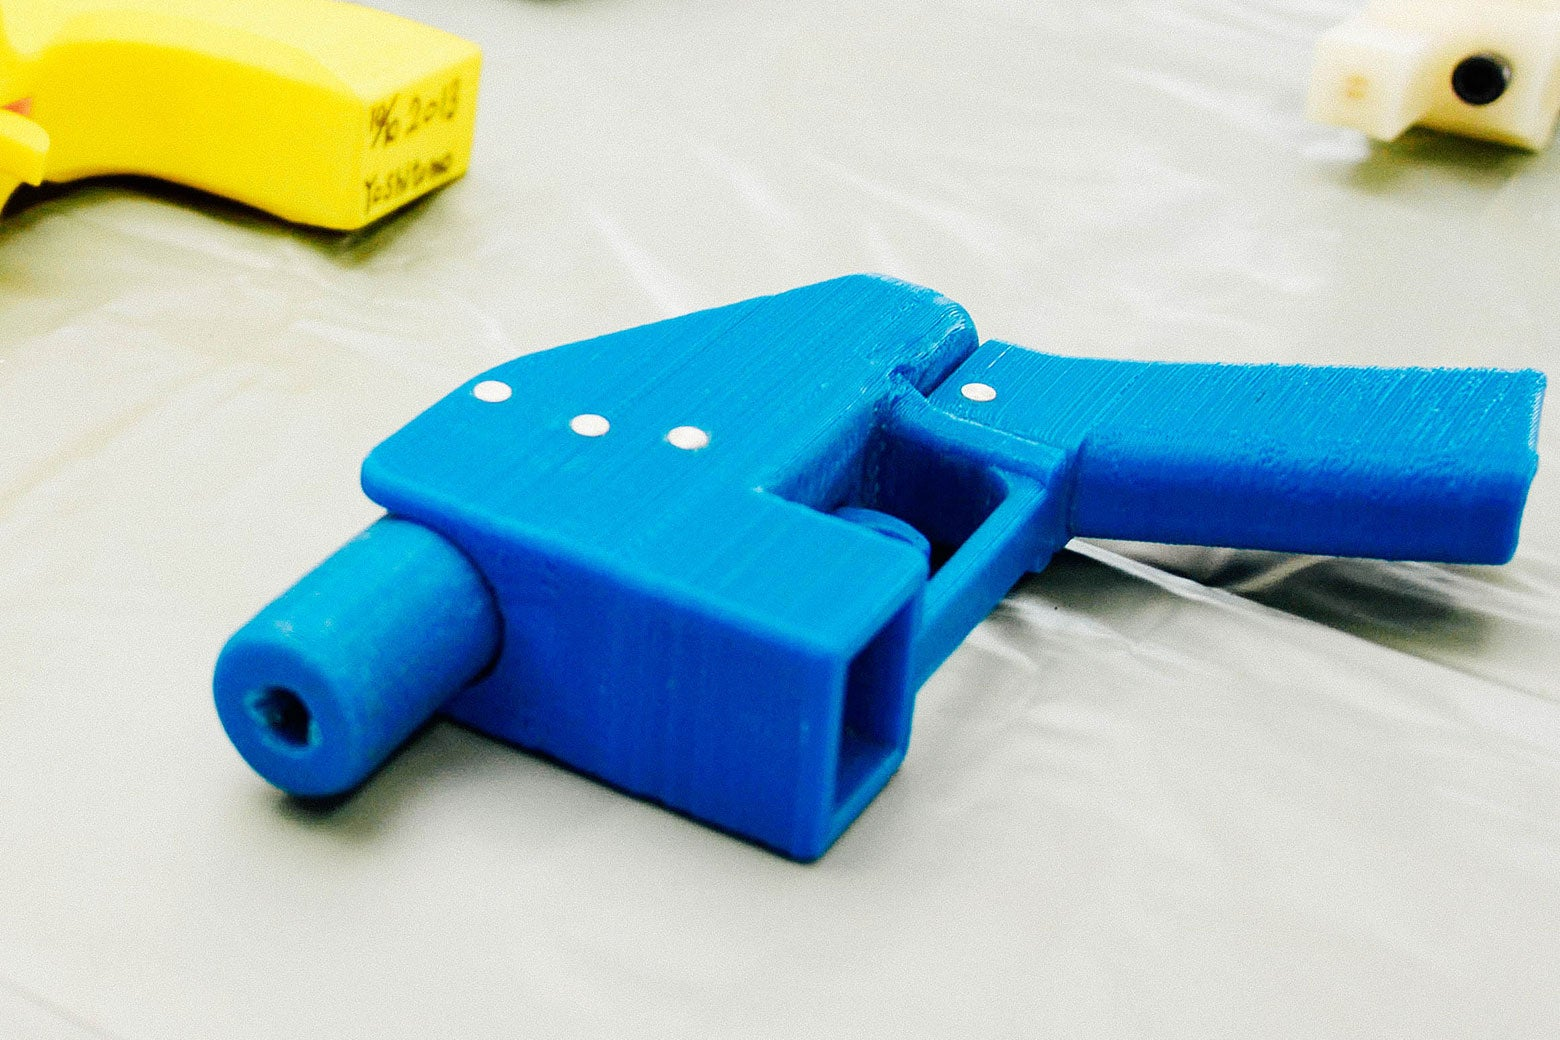 A blue plastic handgun with yellow plastic handguns off to the side.